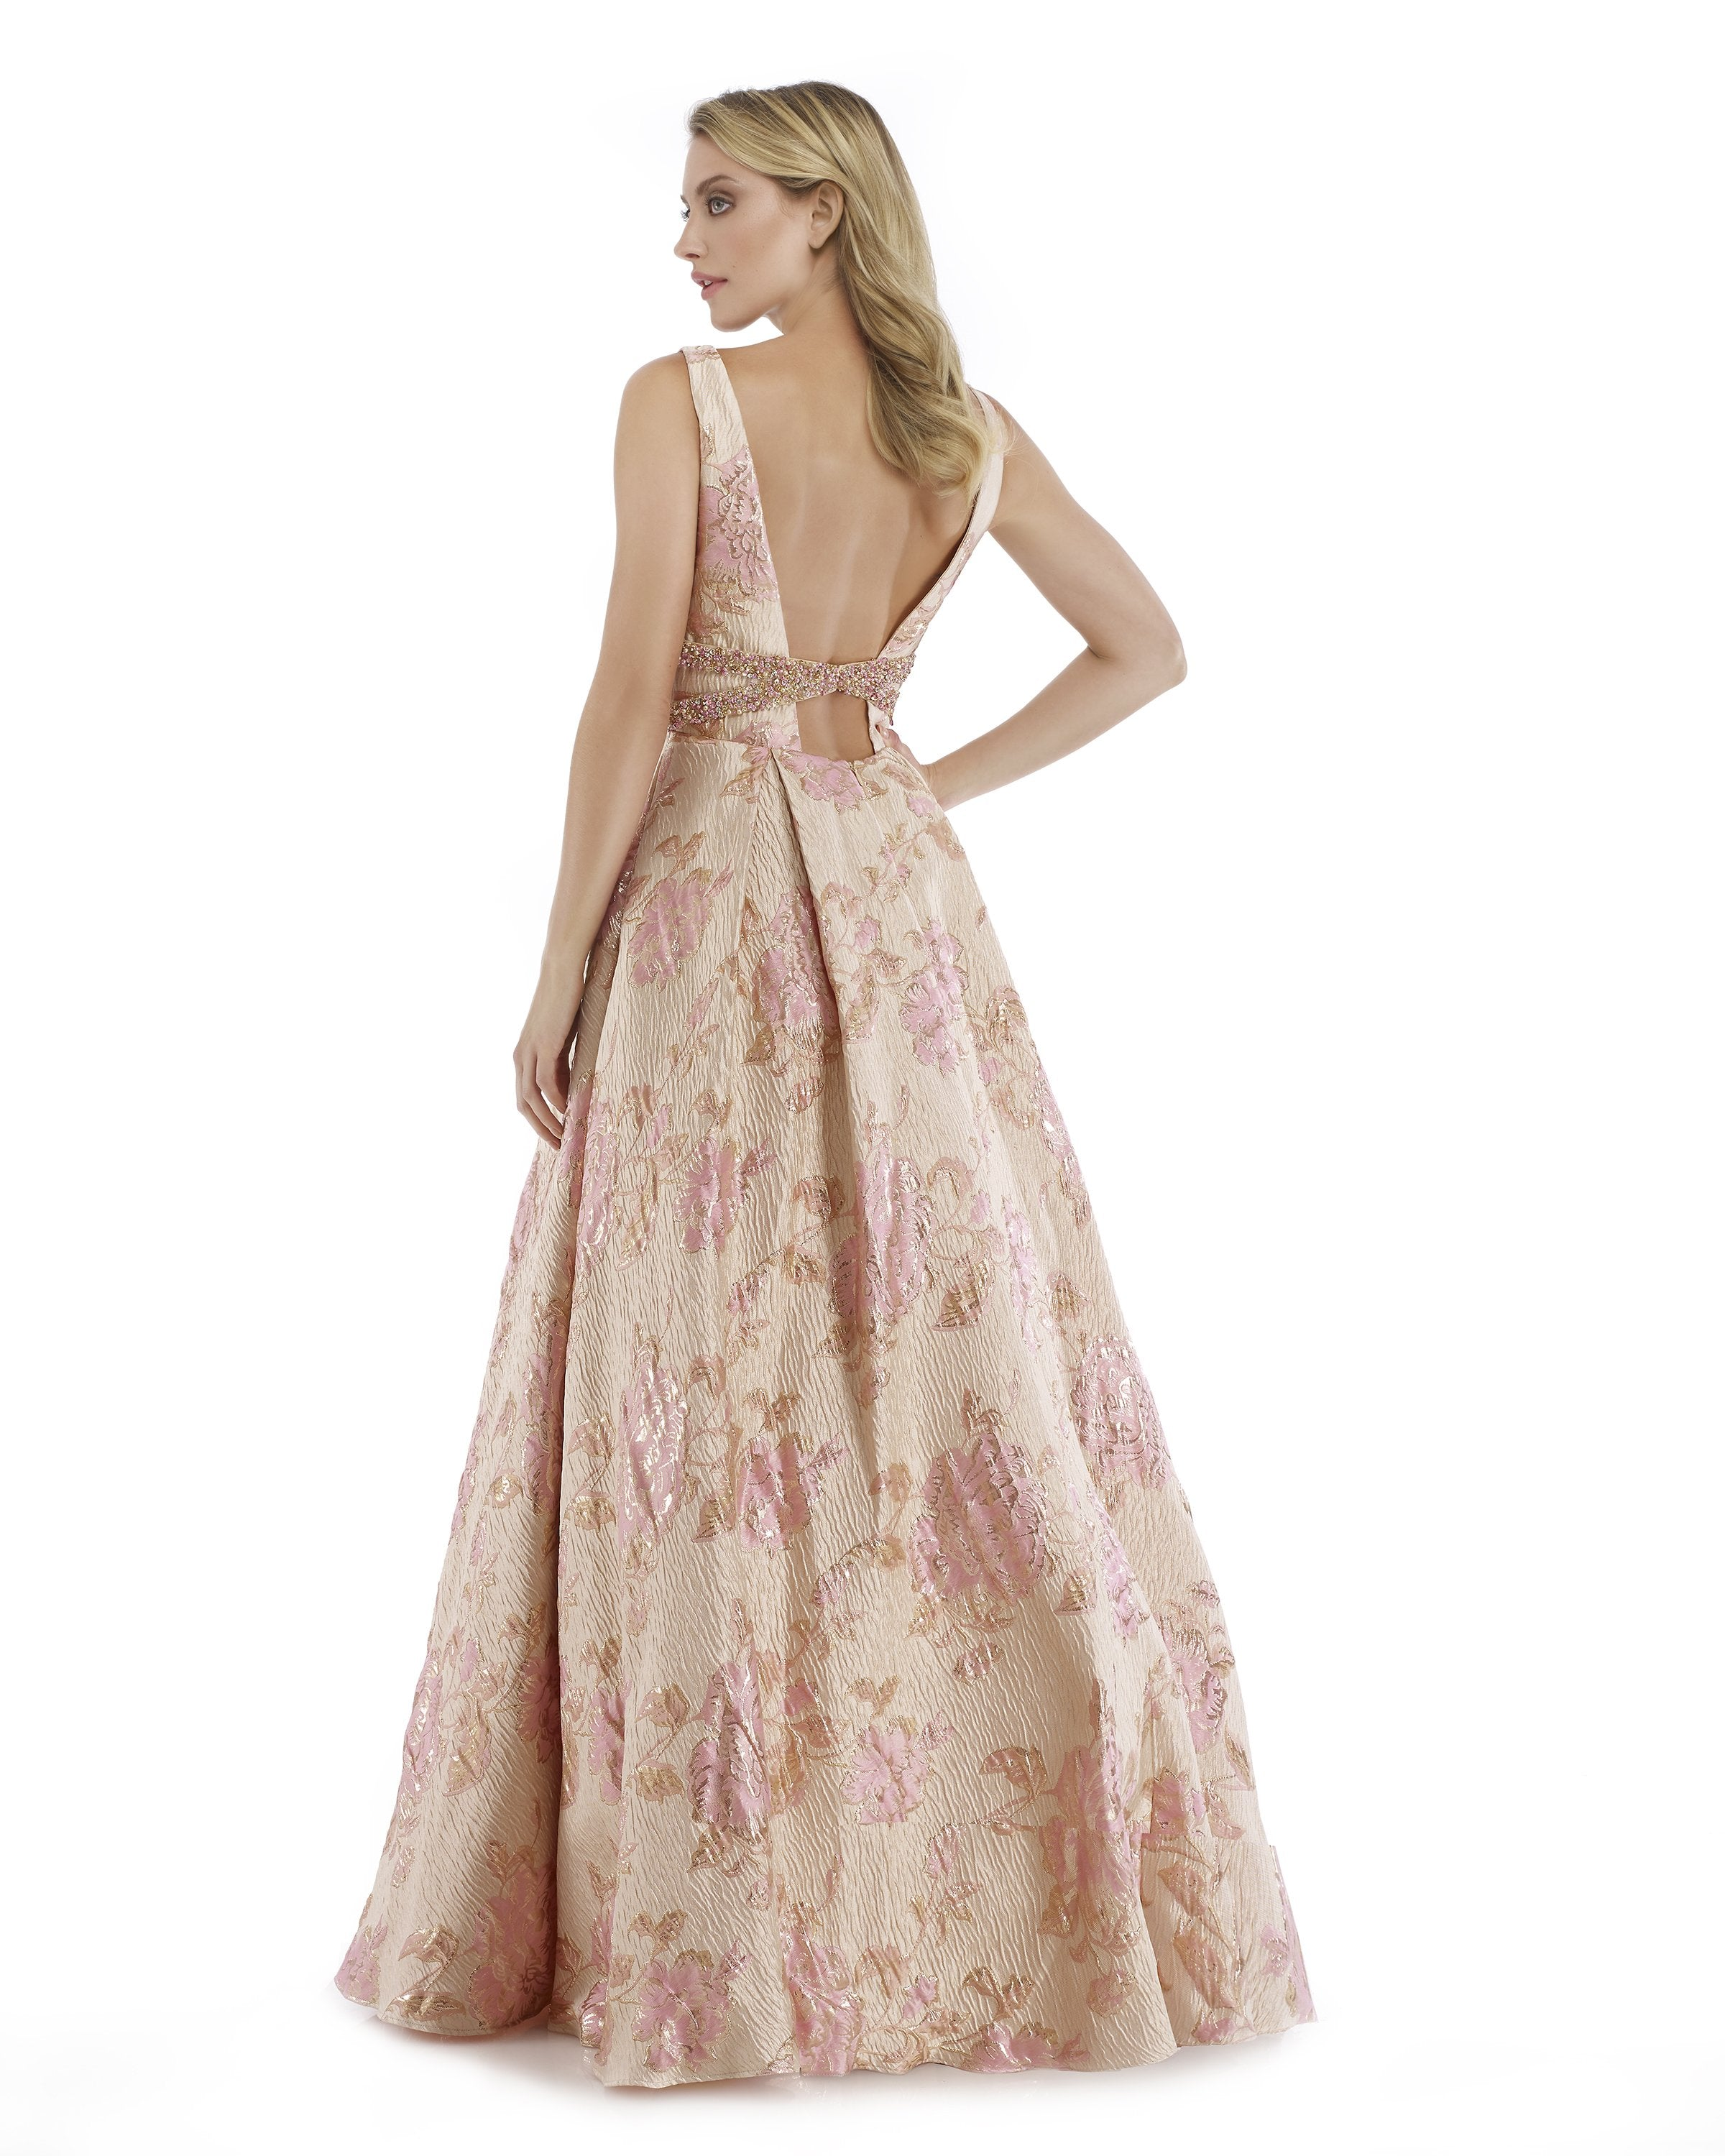 Morrell Maxie - 16028 Metallic Brocade Print Pleated A-line Dress in Pink